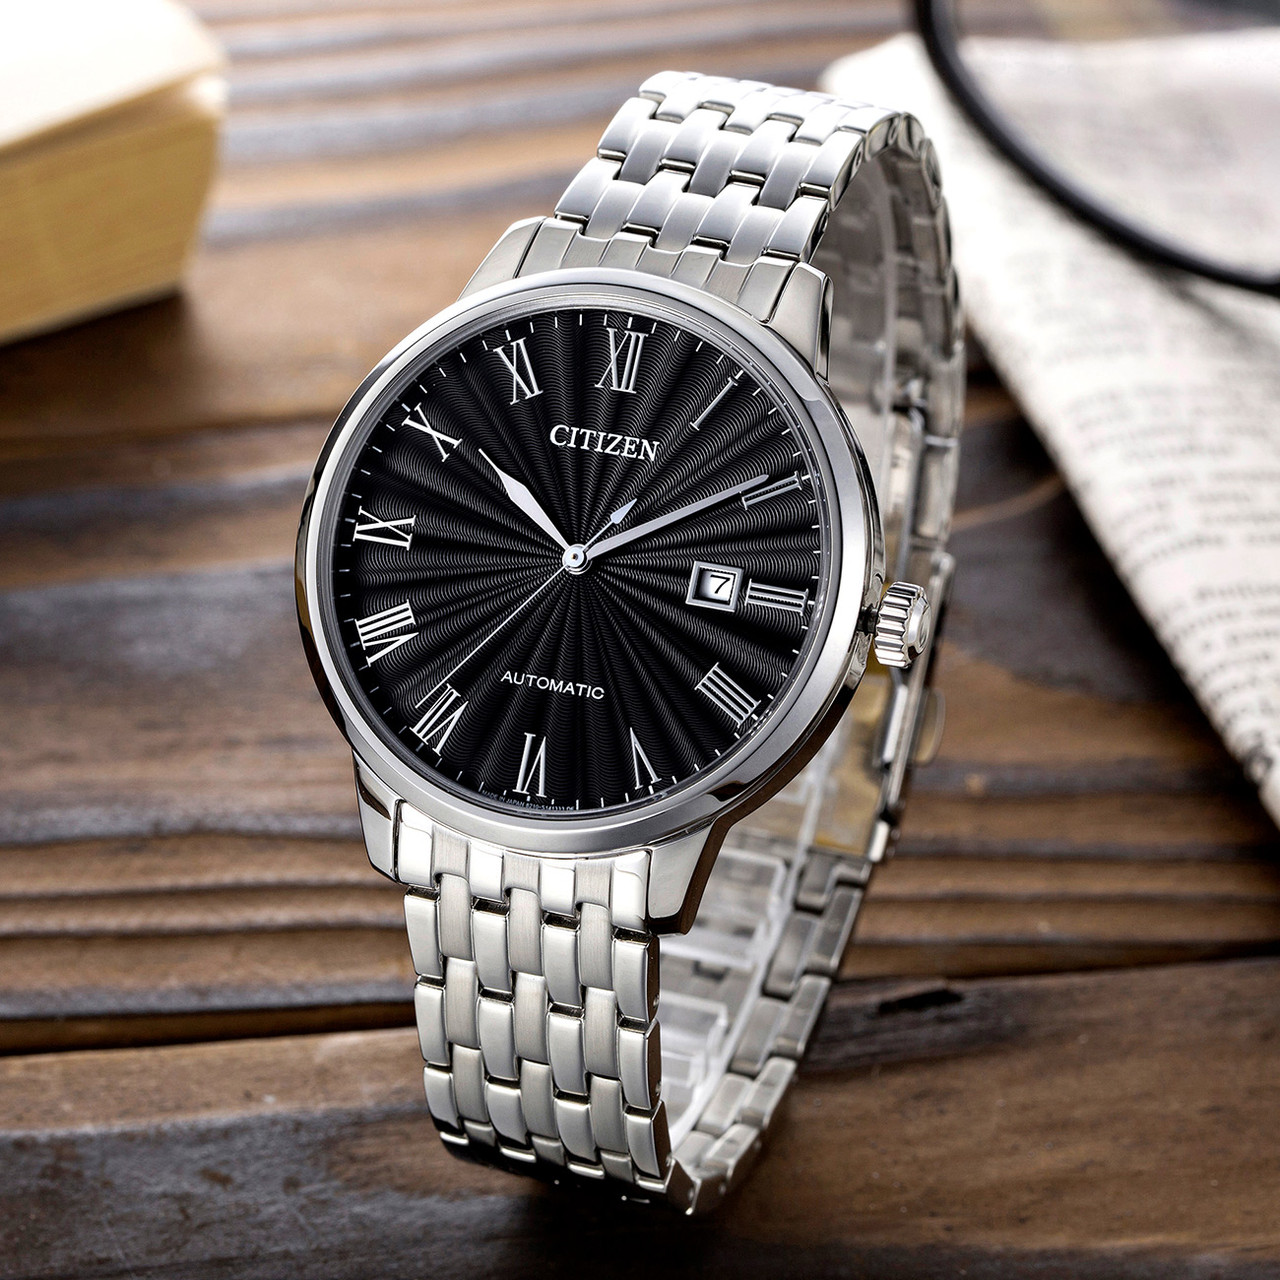 Часы Citizen NJ0080-50E Automatic 8210